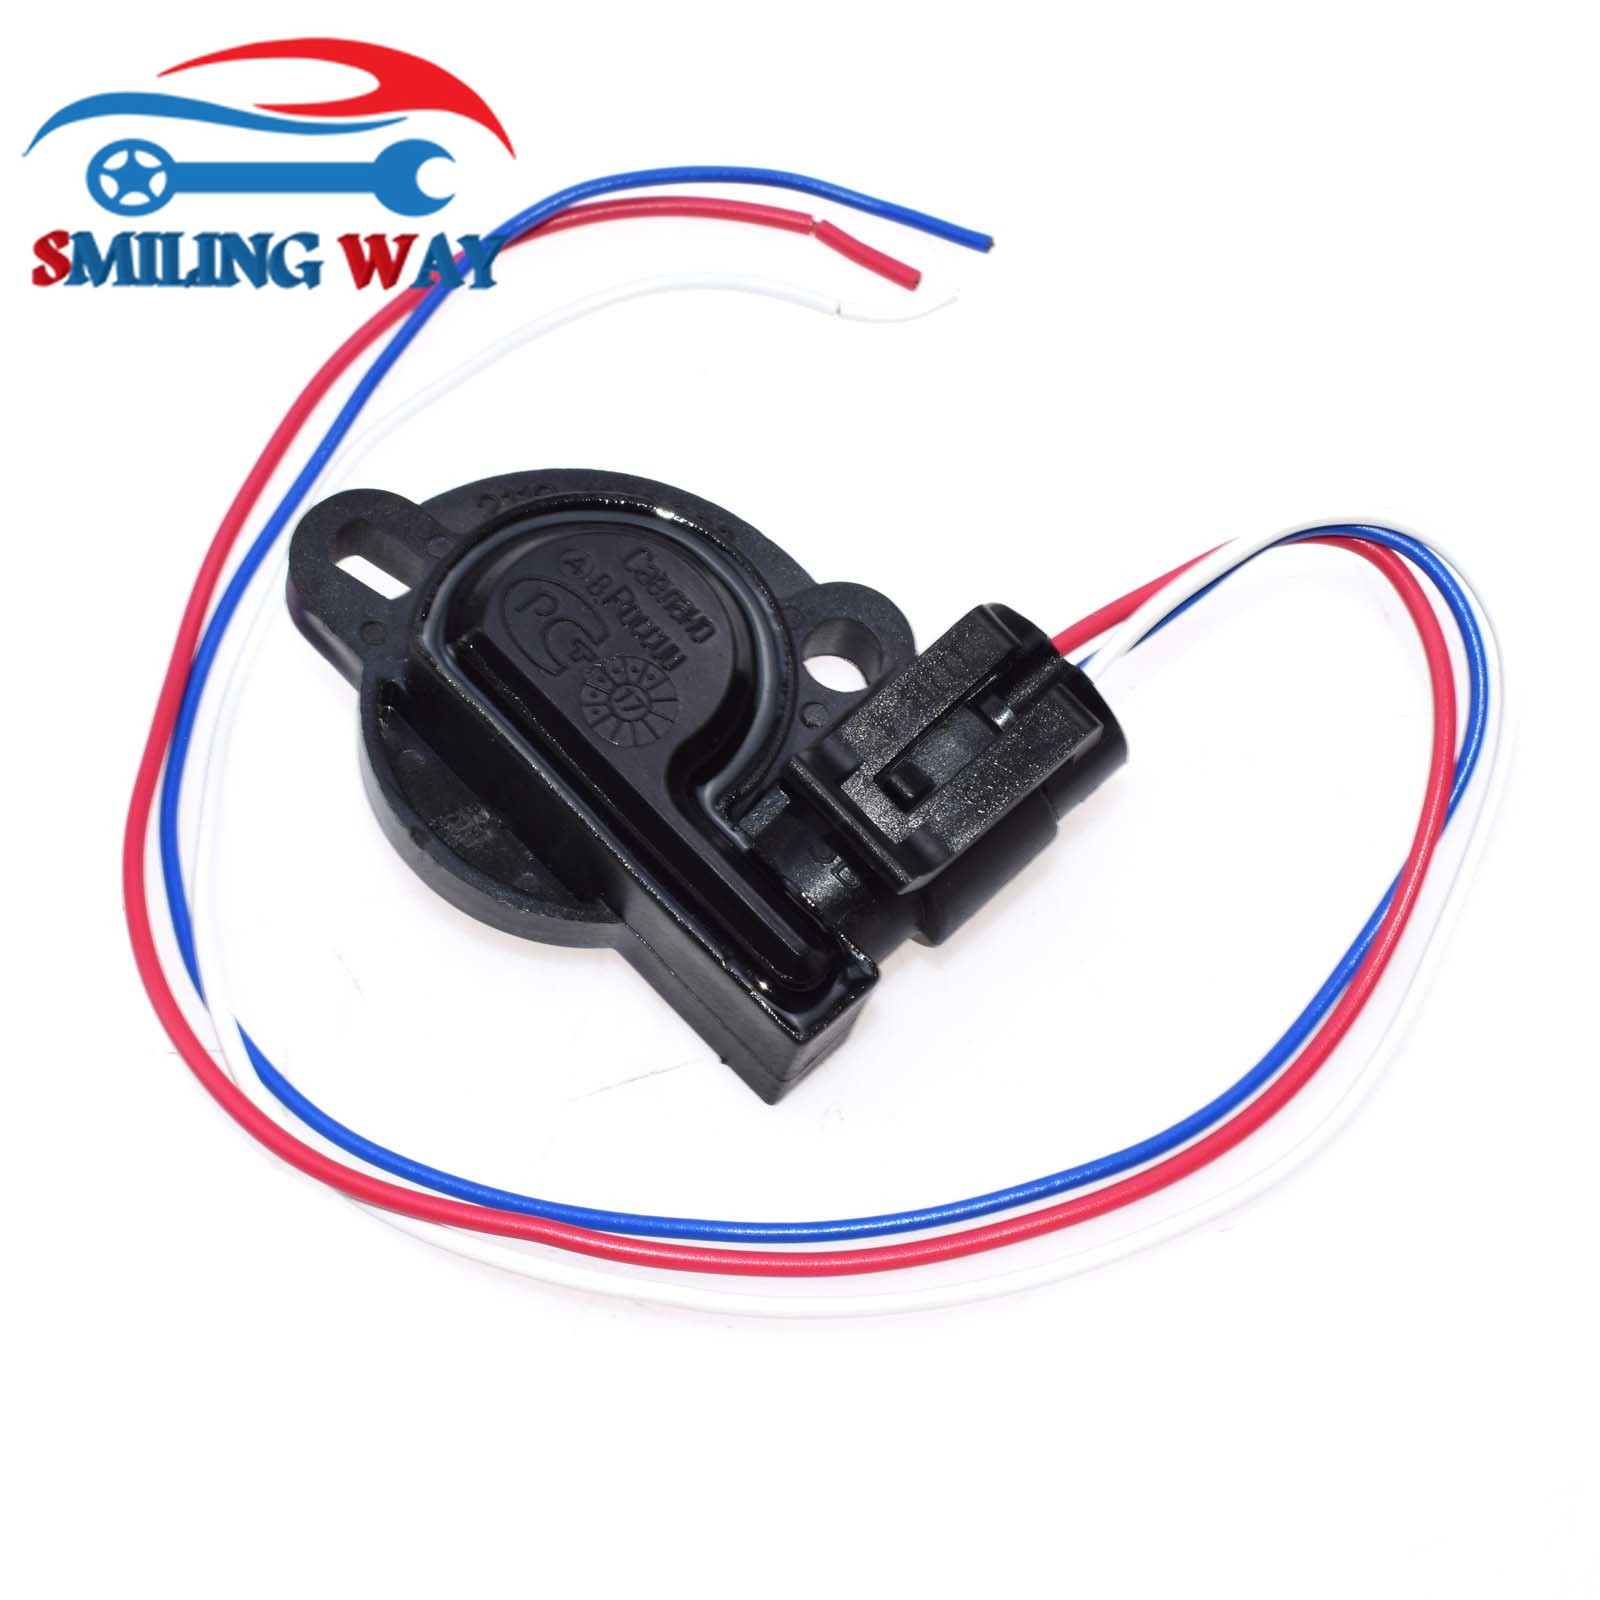 03 Buick Century Tps Wiring Diagrams Diagram Smilimng Way Throttle Position Sensor Wire Connector For Lada Rh Aliexpress Com Window